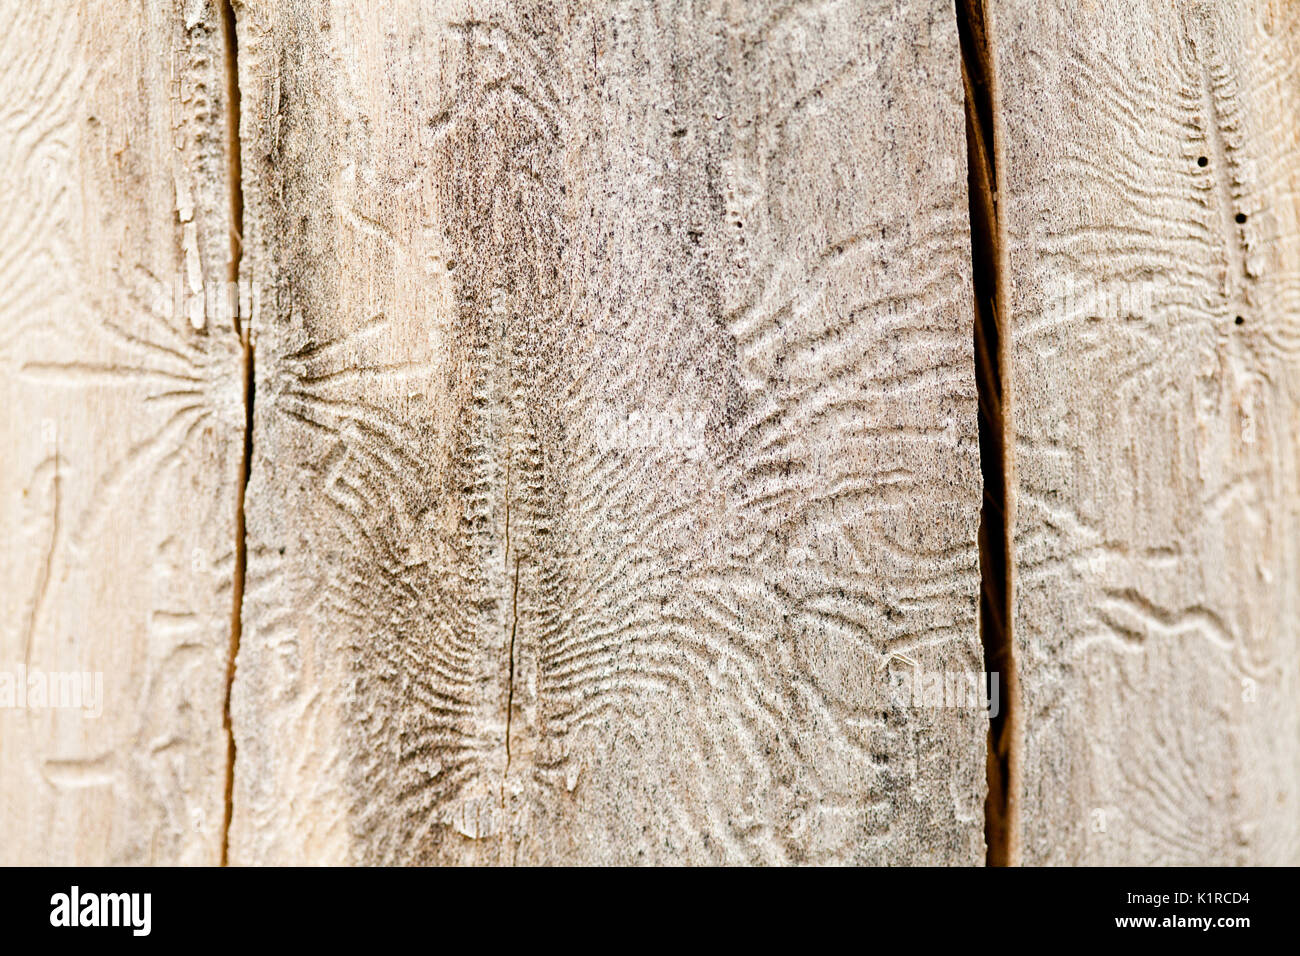 Bark beetle galleries on the tree Stock Photo